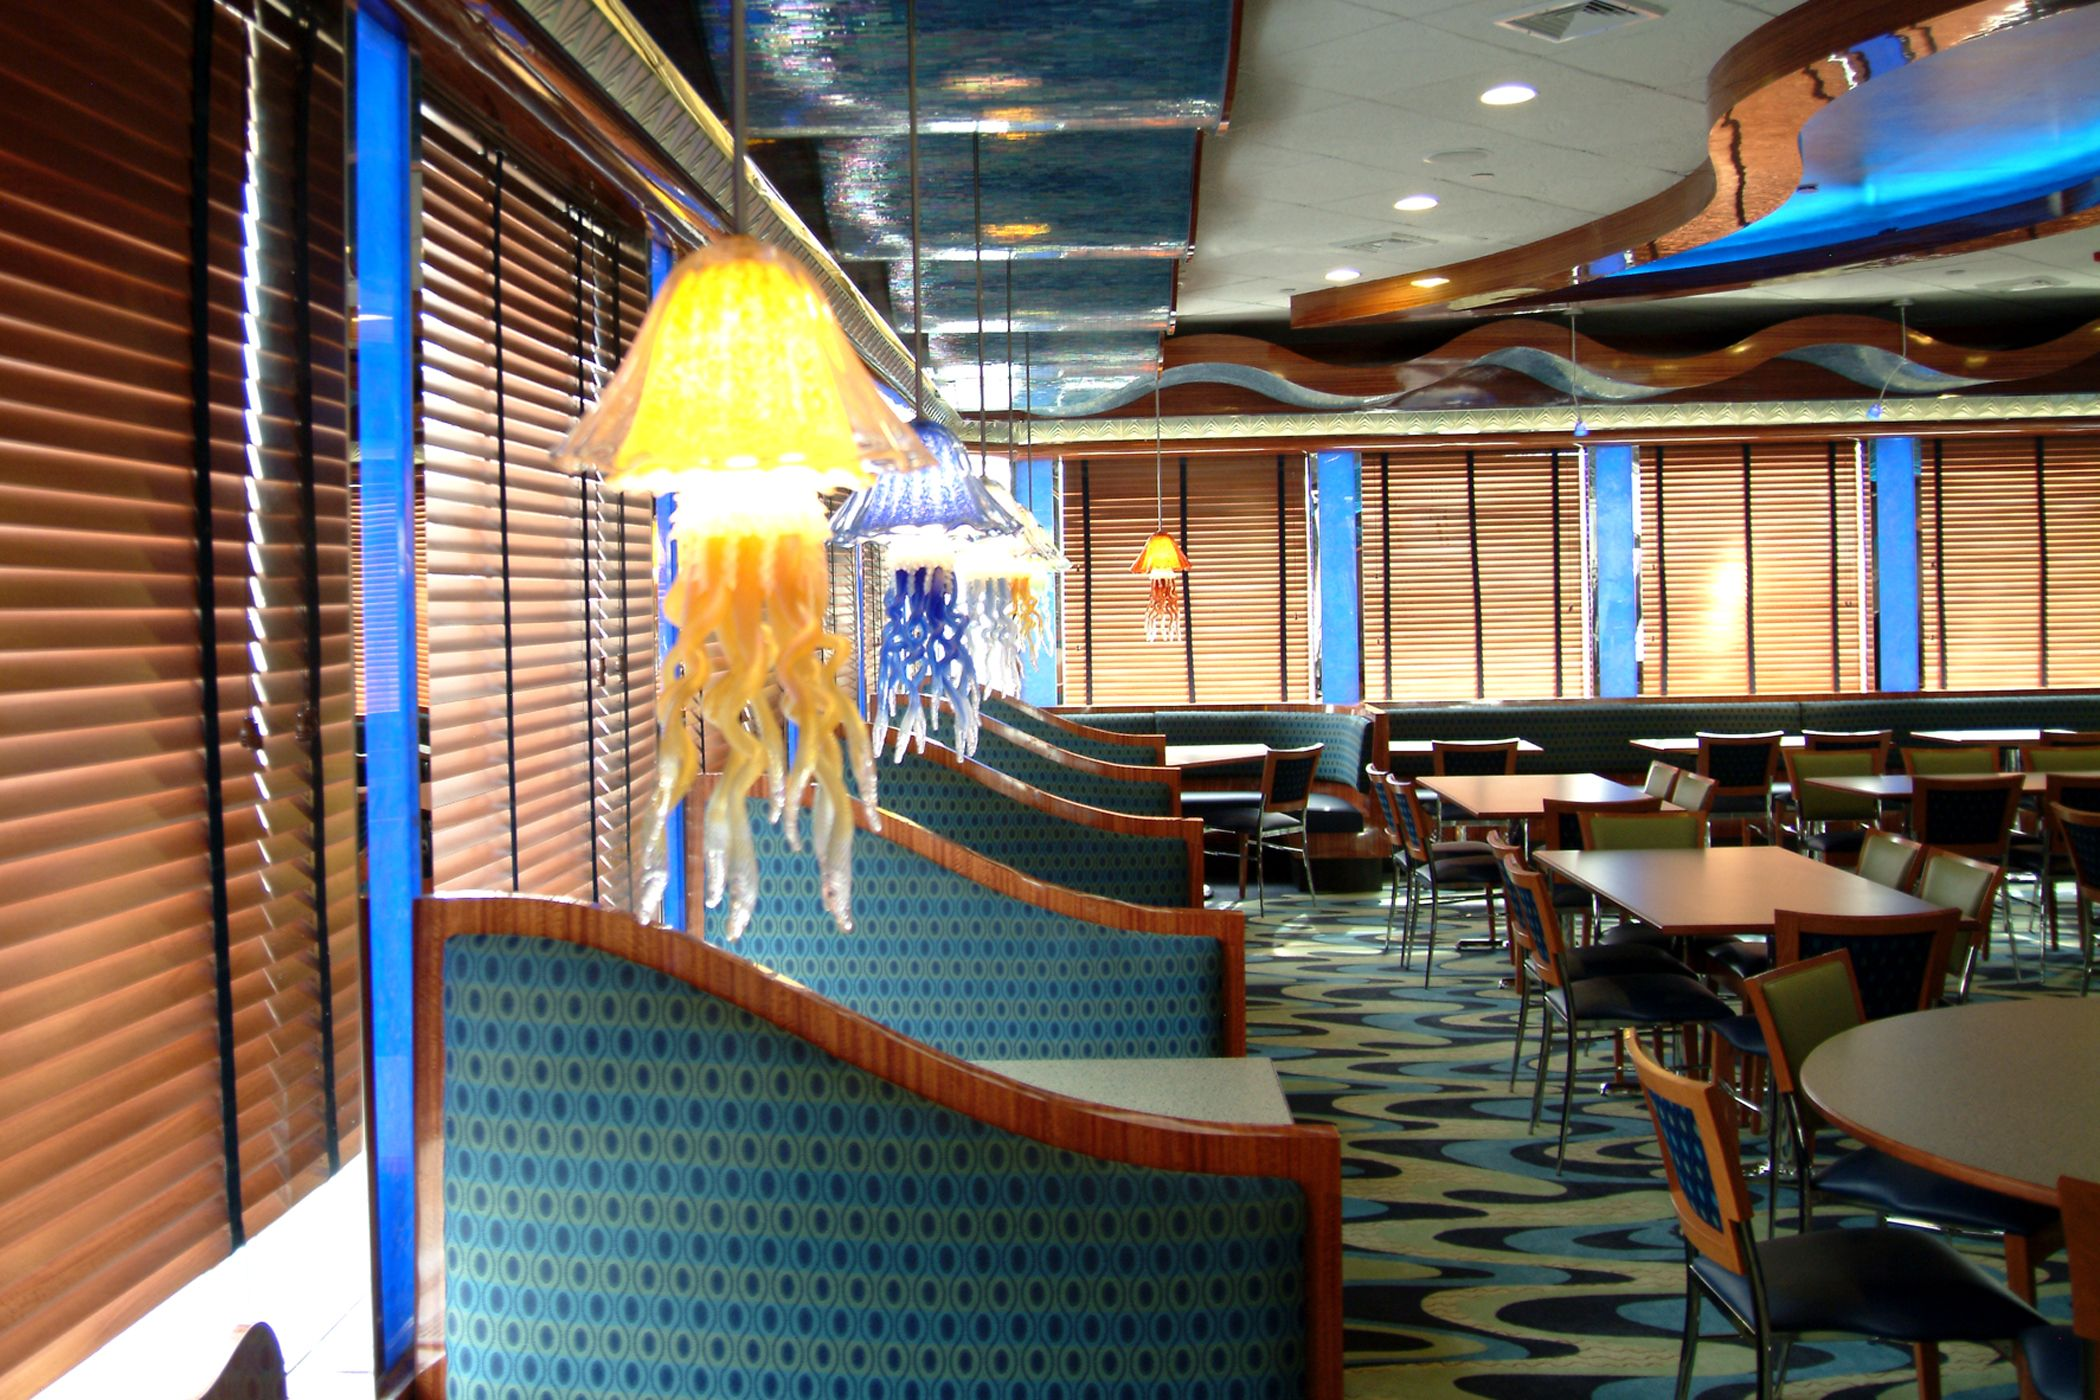 More Underwater Creatures Are Found In These Jellyfish Pendants In The East Bay Diner In Wantagh Ny With Images Commercial Design Underwater Creatures East Bay